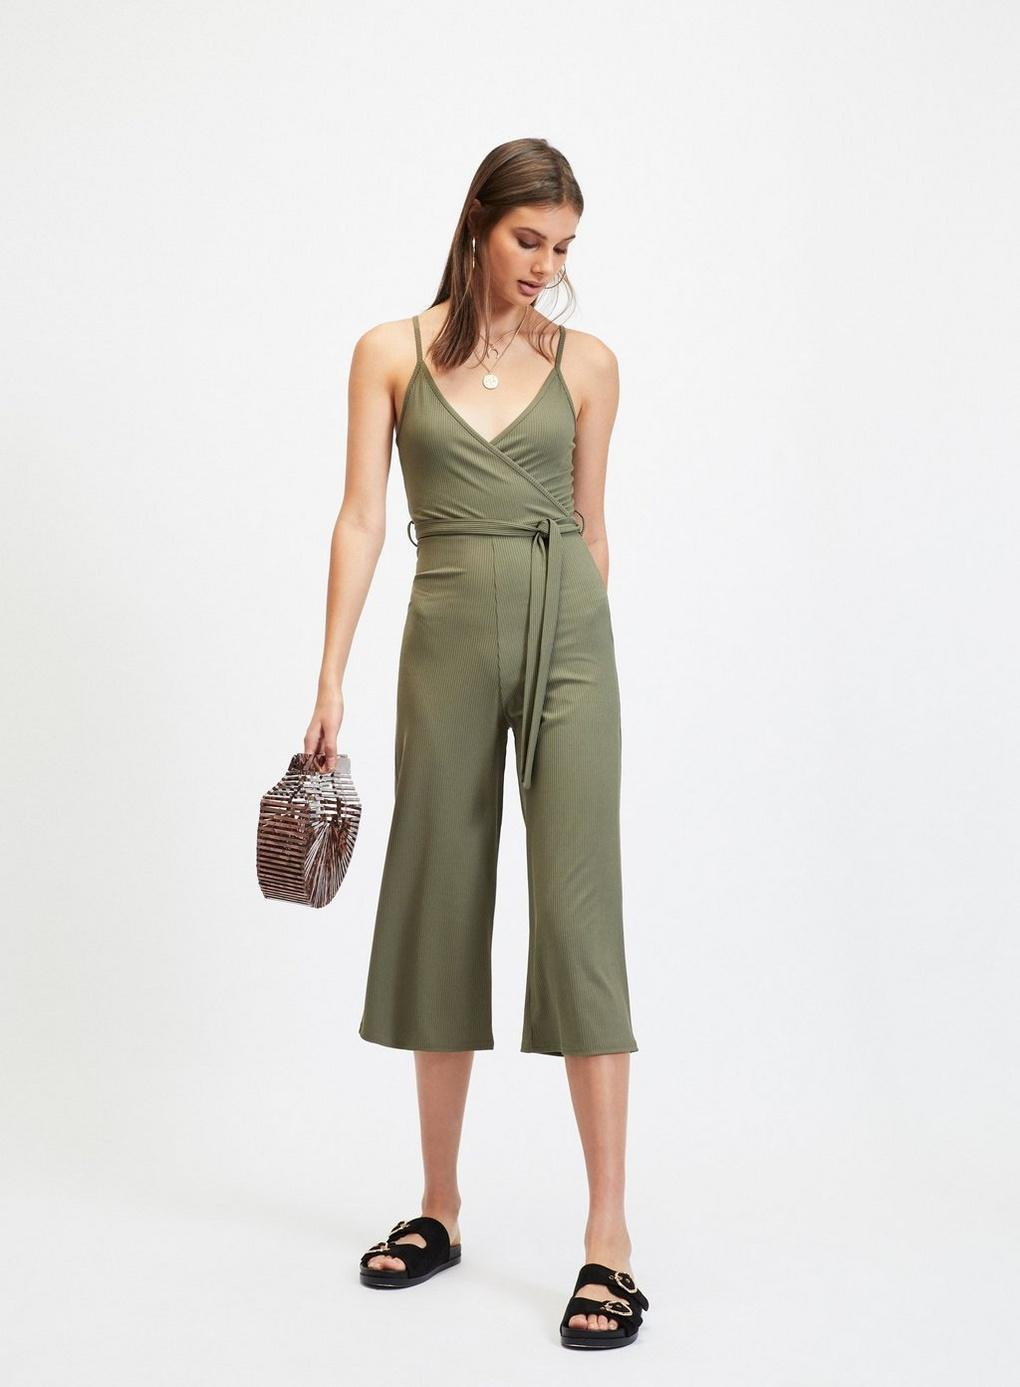 b22a778141a Miss Selfridge - Green Khaki Slinky Strappy Rib Jumpsuit - Lyst. View  fullscreen